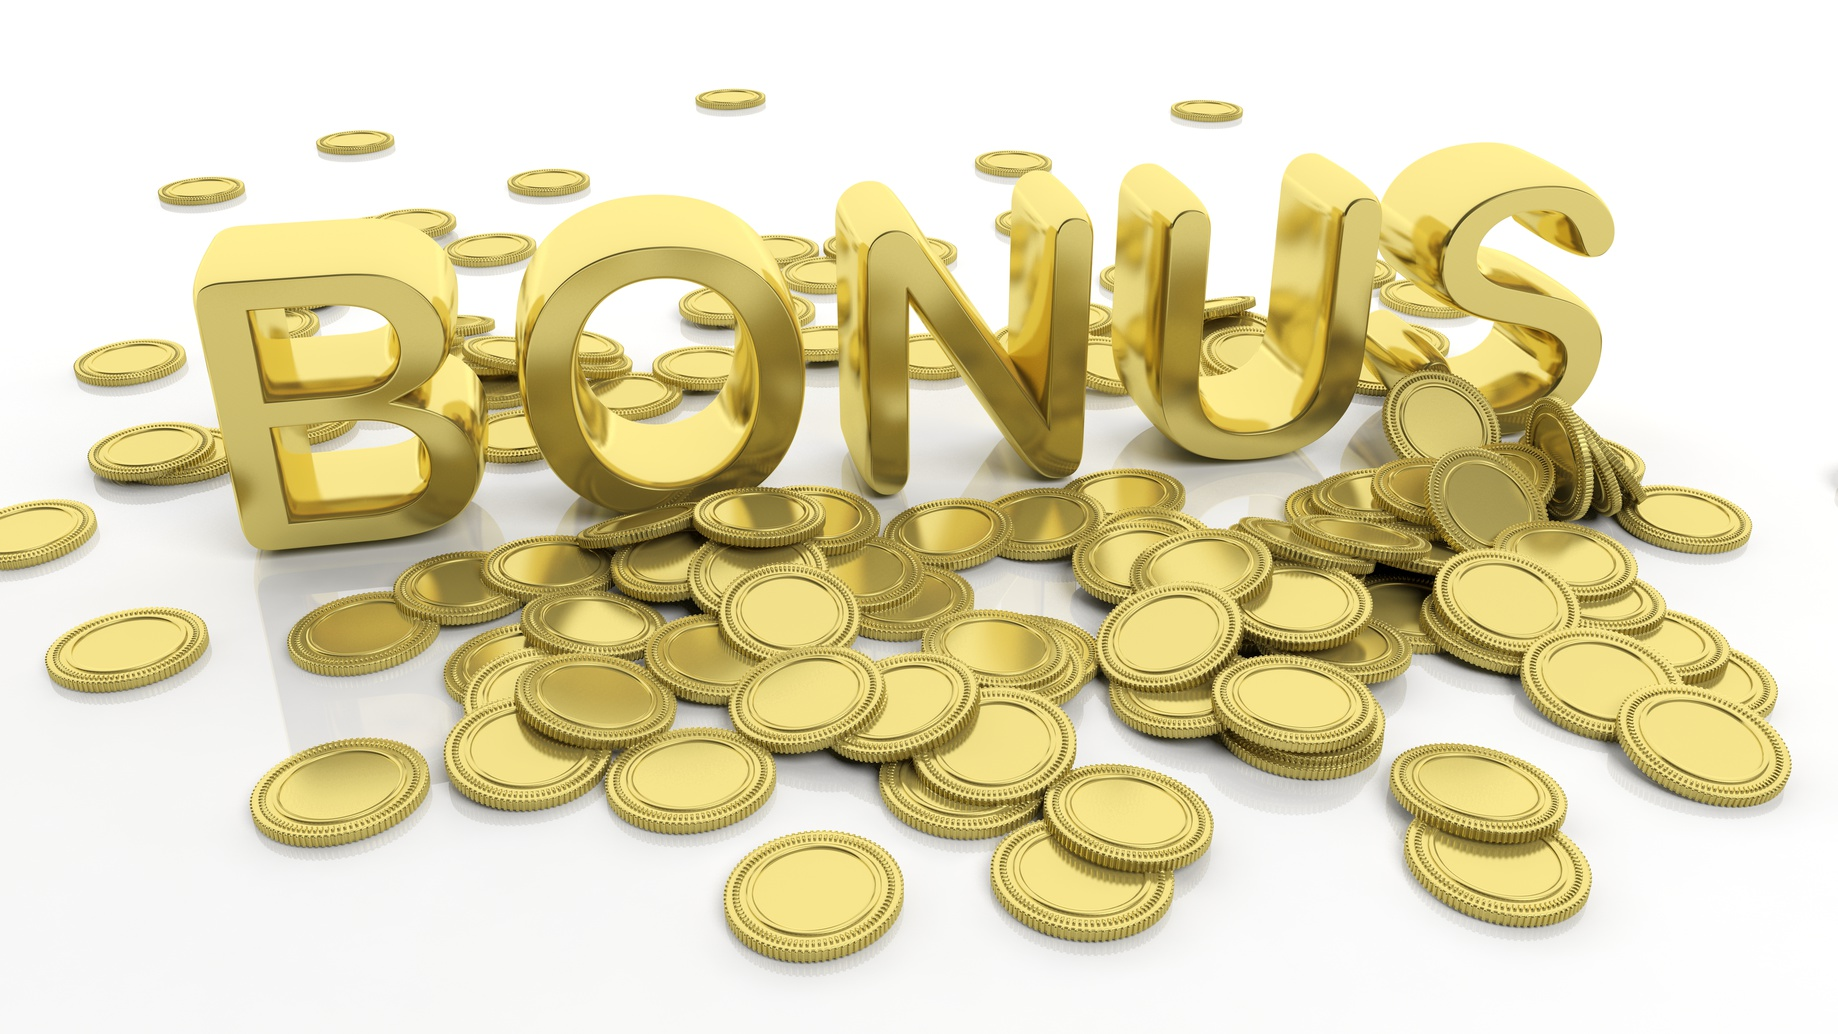 Casino Bonuses The Online Casinos Promotion That You Need